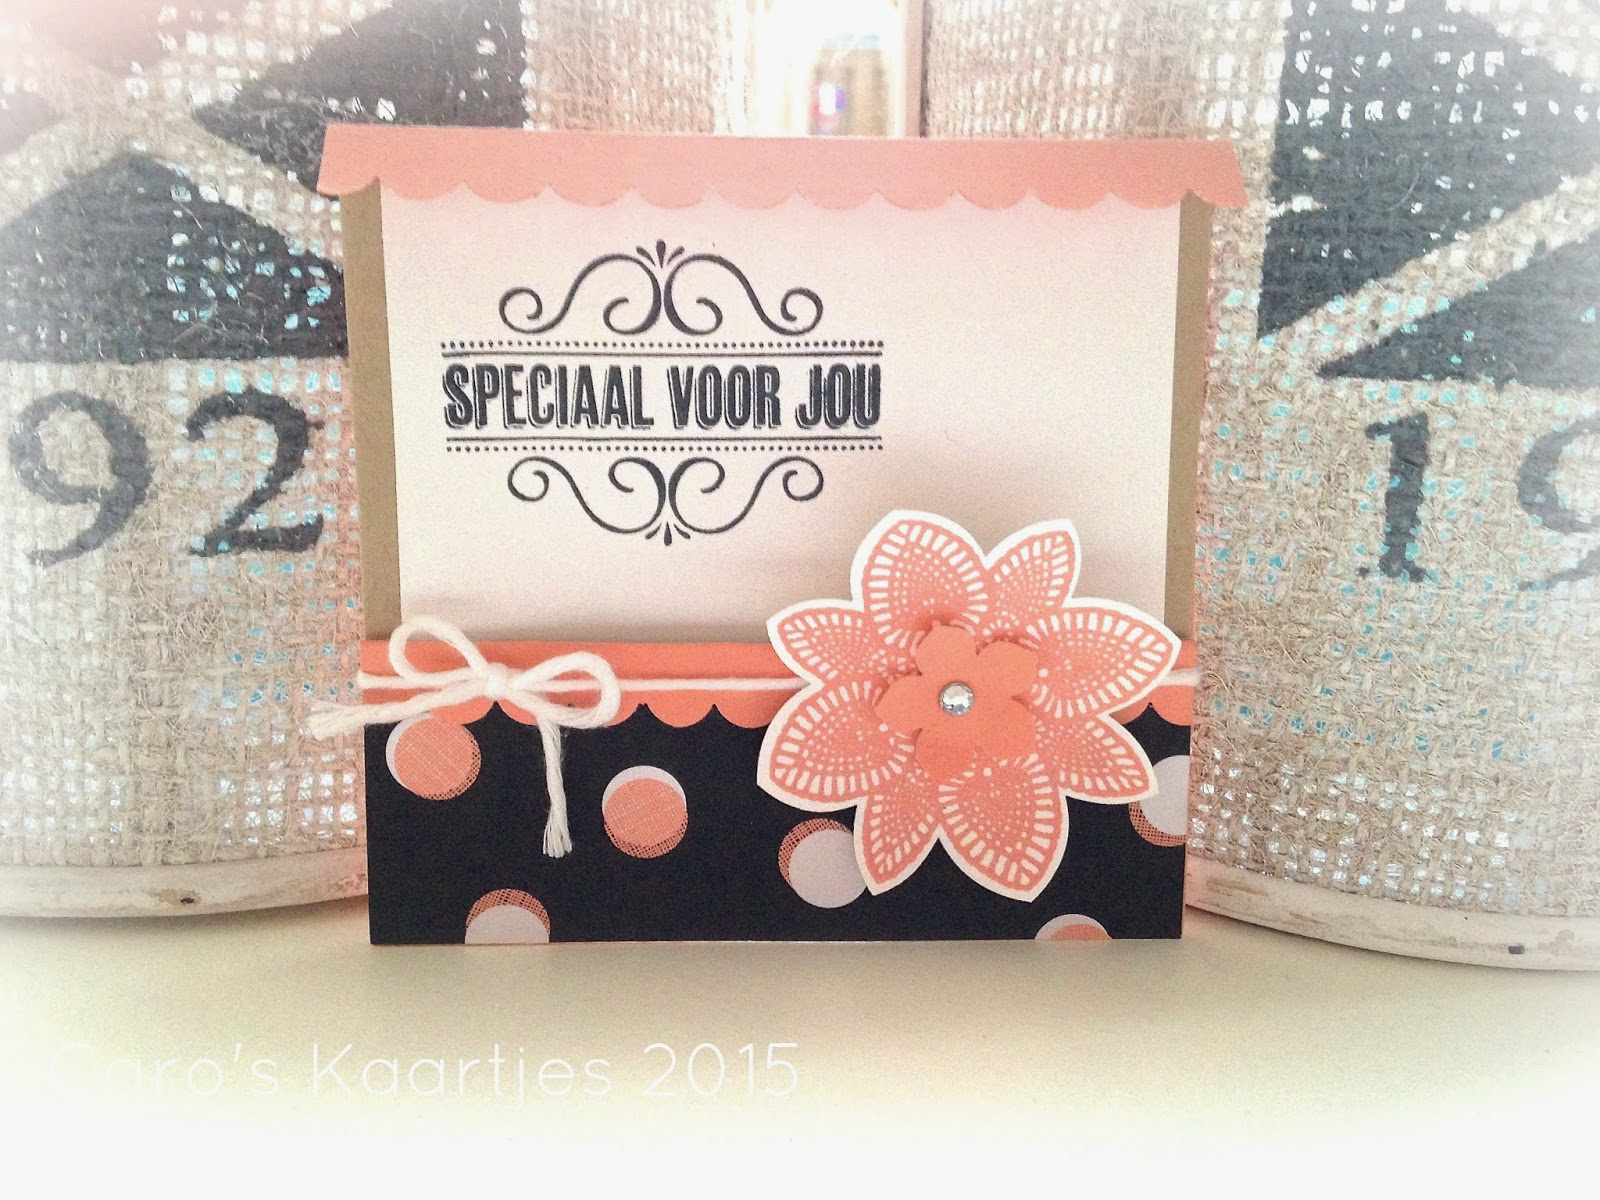 This Stampin' Up! card is handmade by Caro 2015